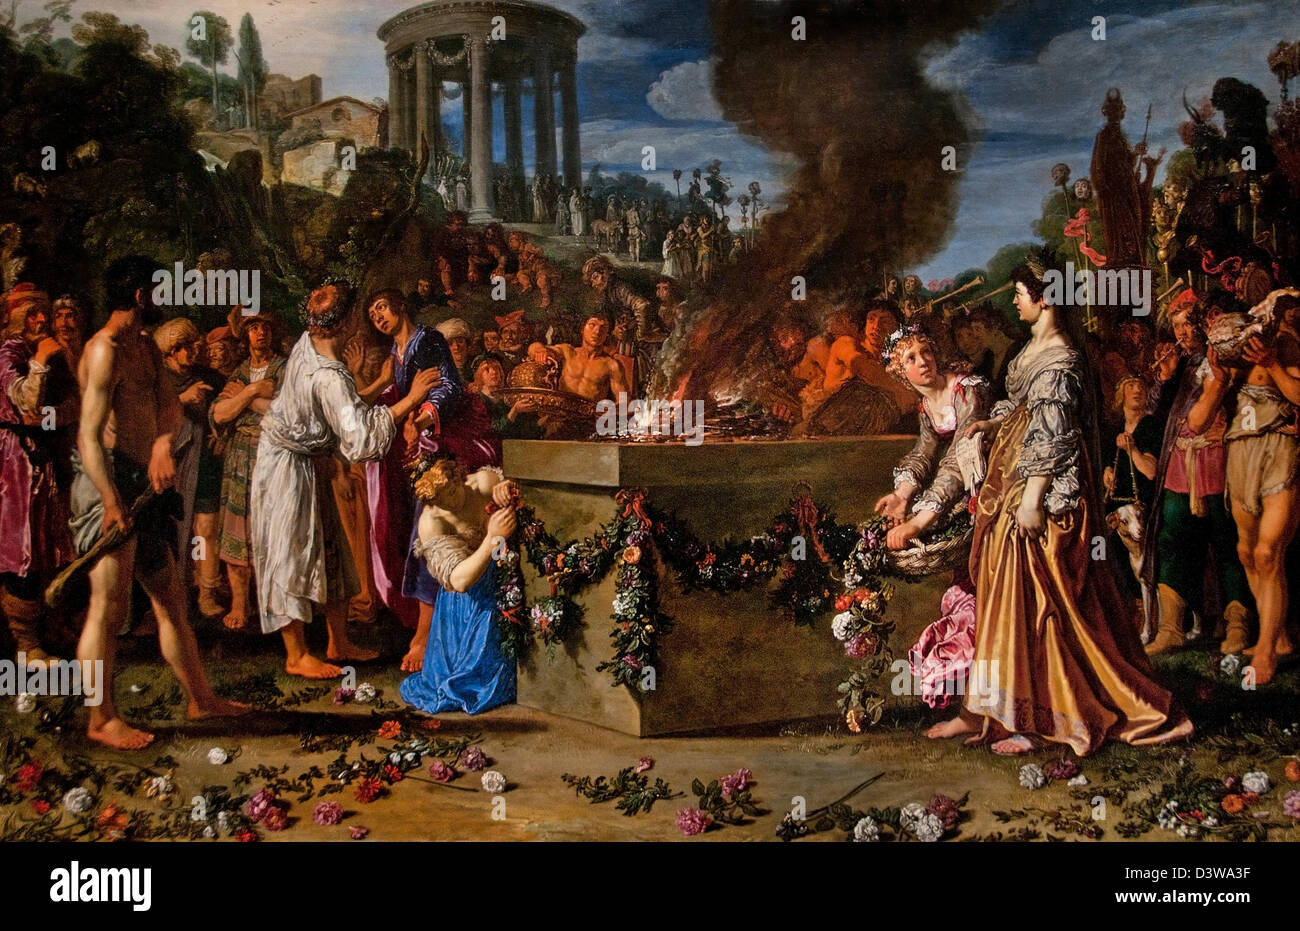 The Dispute between Orestes and Pylades 1614  Pieter Lastman  Dutch Netherlands - Stock Image